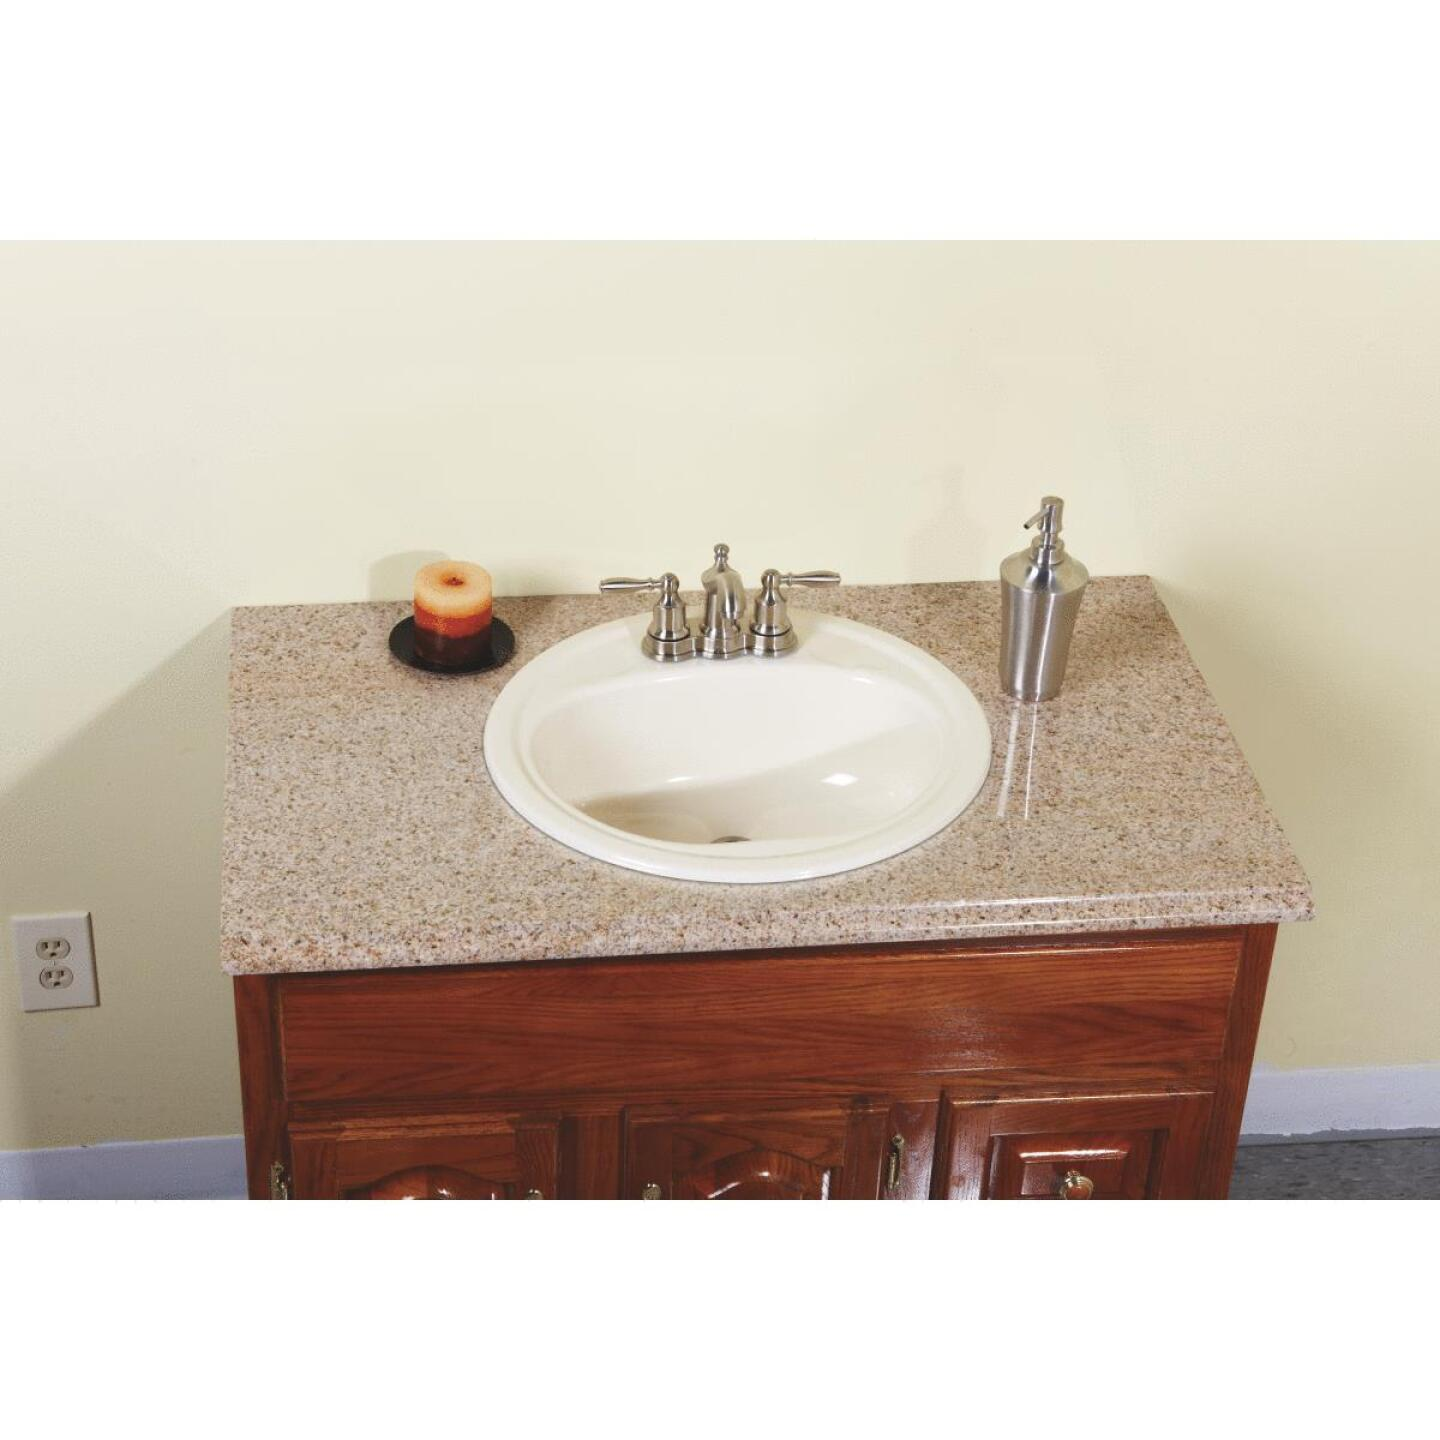 Briggs Anderson Round Drop-In Oval Bathroom Sink, Bone Image 2